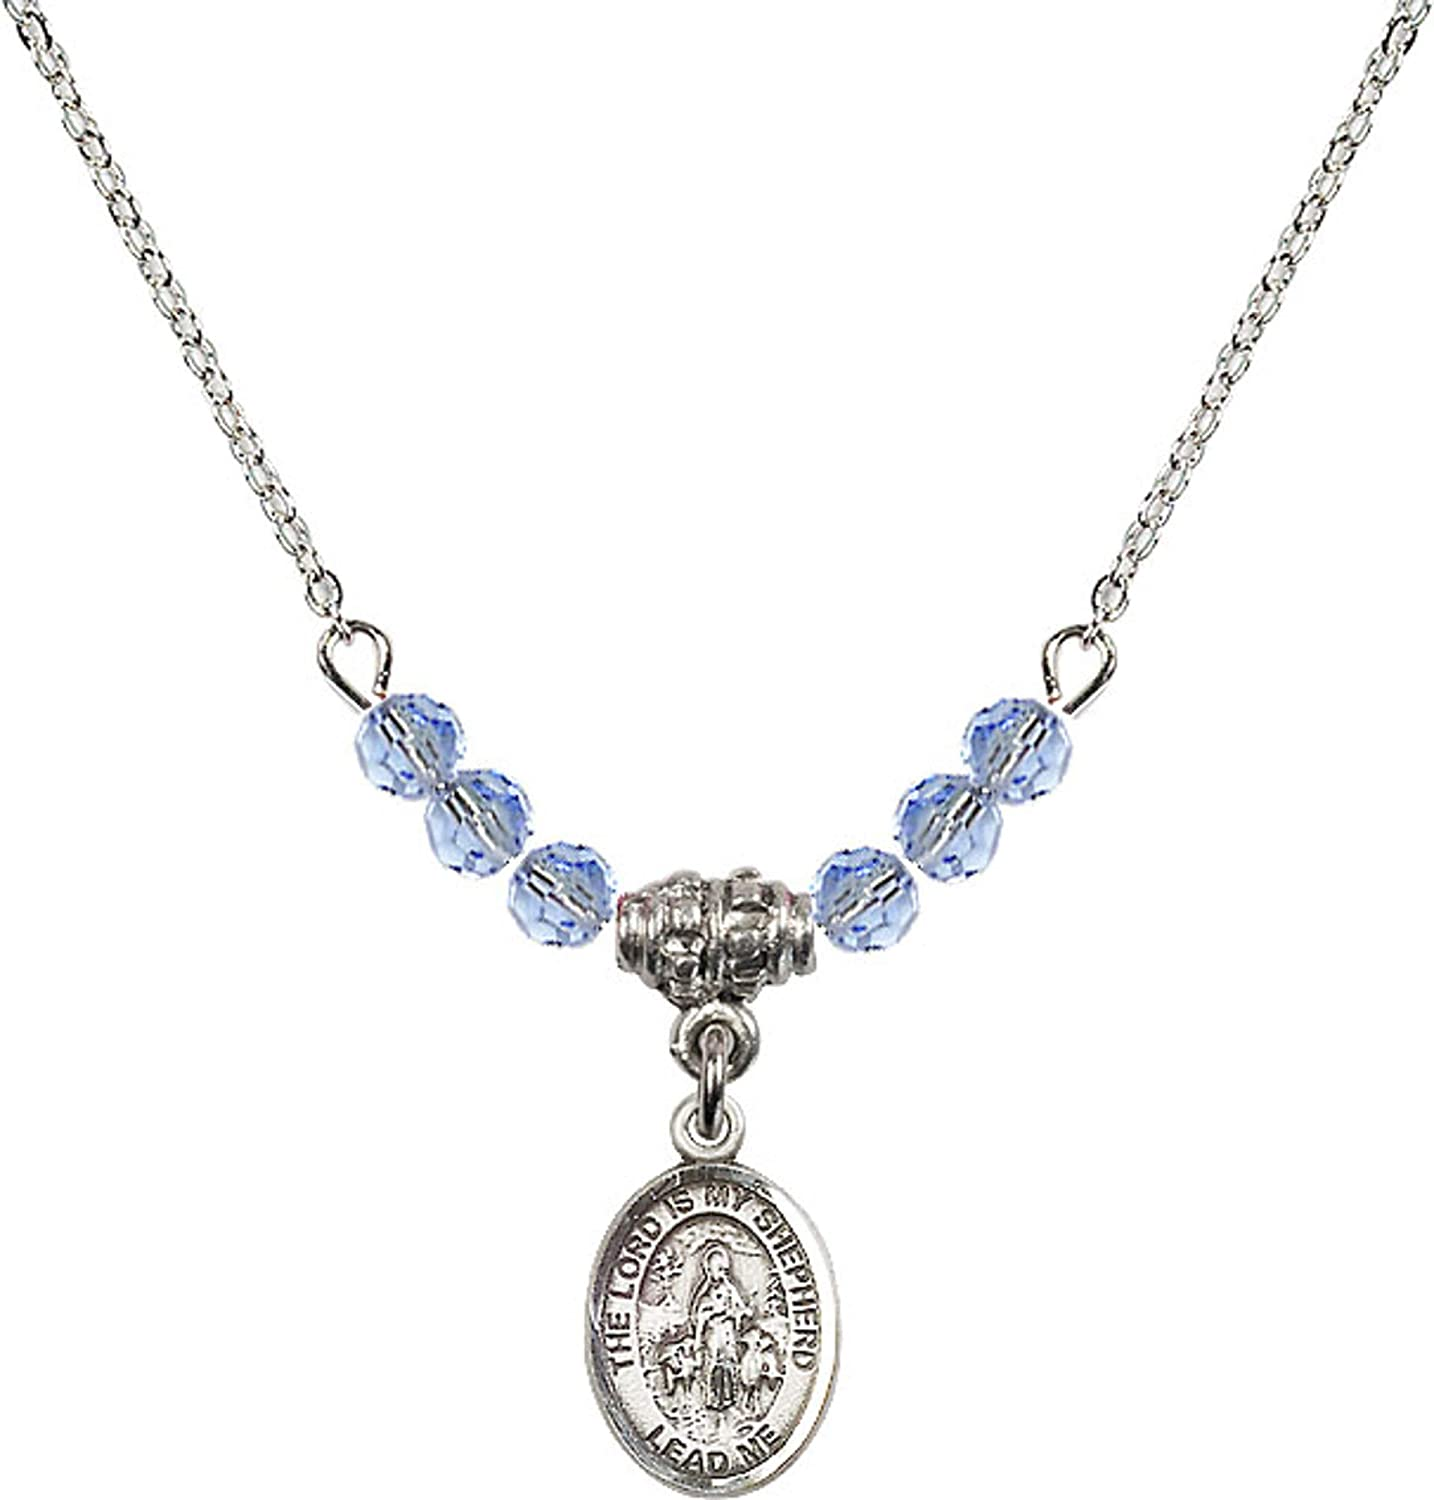 Bonyak Jewelry 18 Inch Rhodium Plated Necklace w// 4mm Light Blue September Birth Month Stone Beads and Lord is My Shepherd Charm